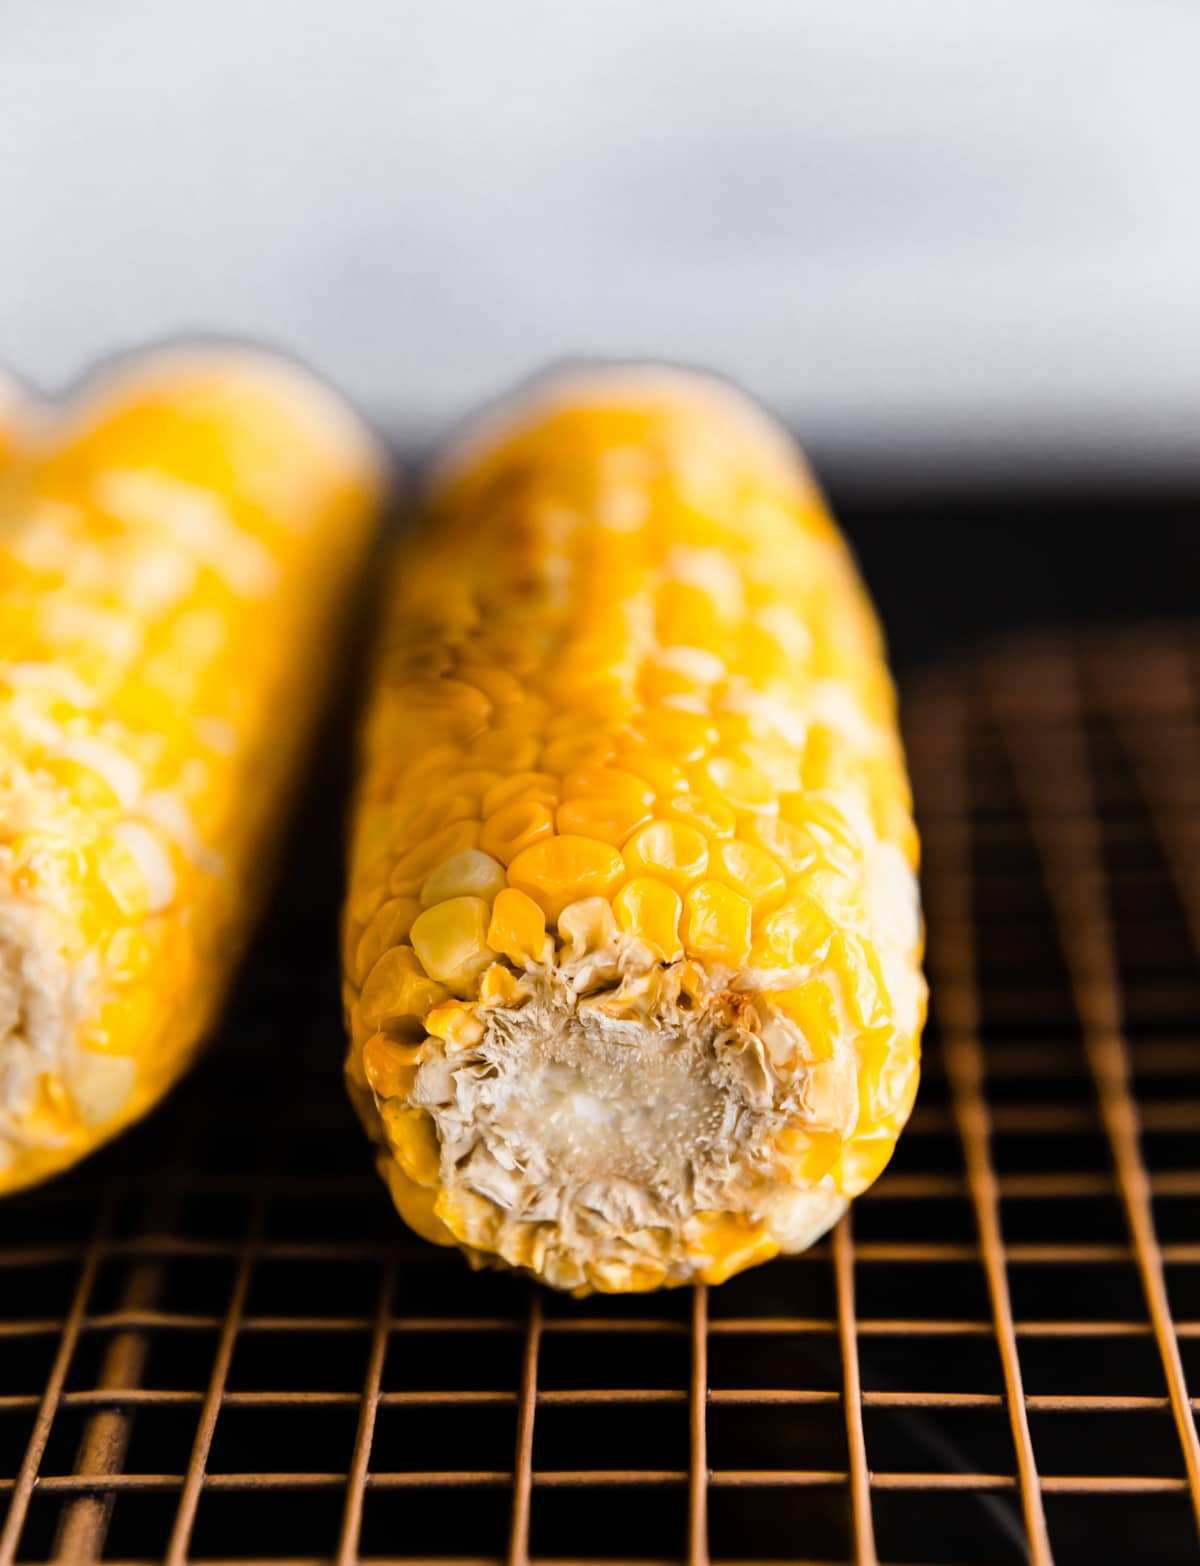 corn cobs on a metal grate for roasting